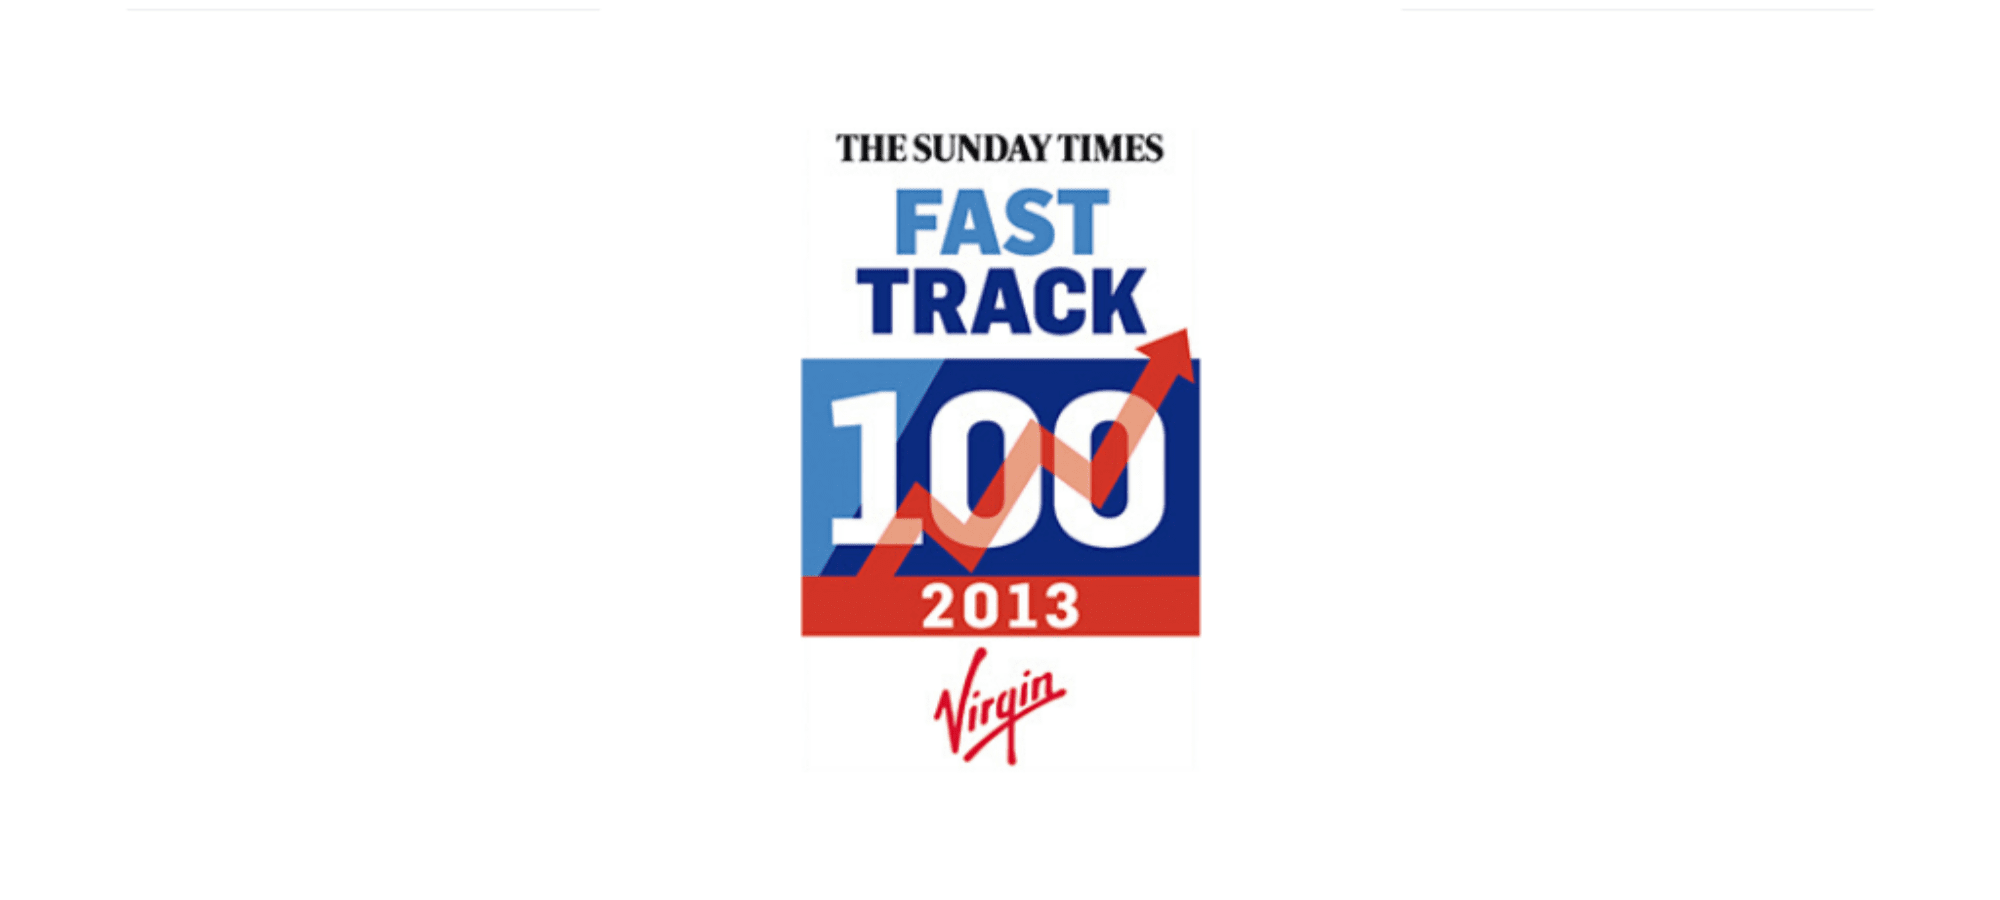 The Sunday Times Fast Track 100 - 2013